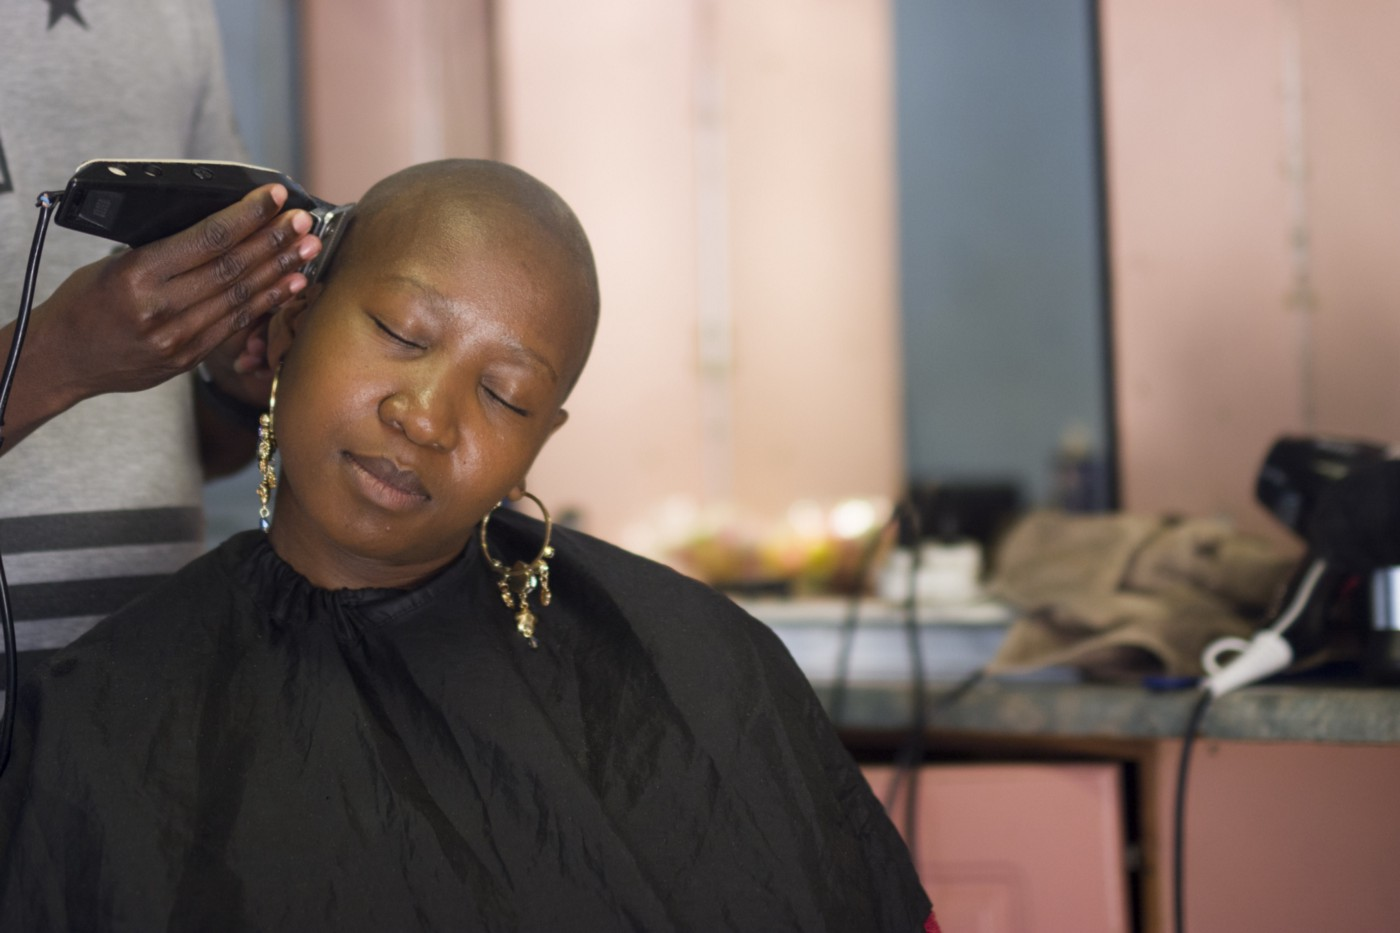 Black woman shaving her hair, with a peaceful expression.